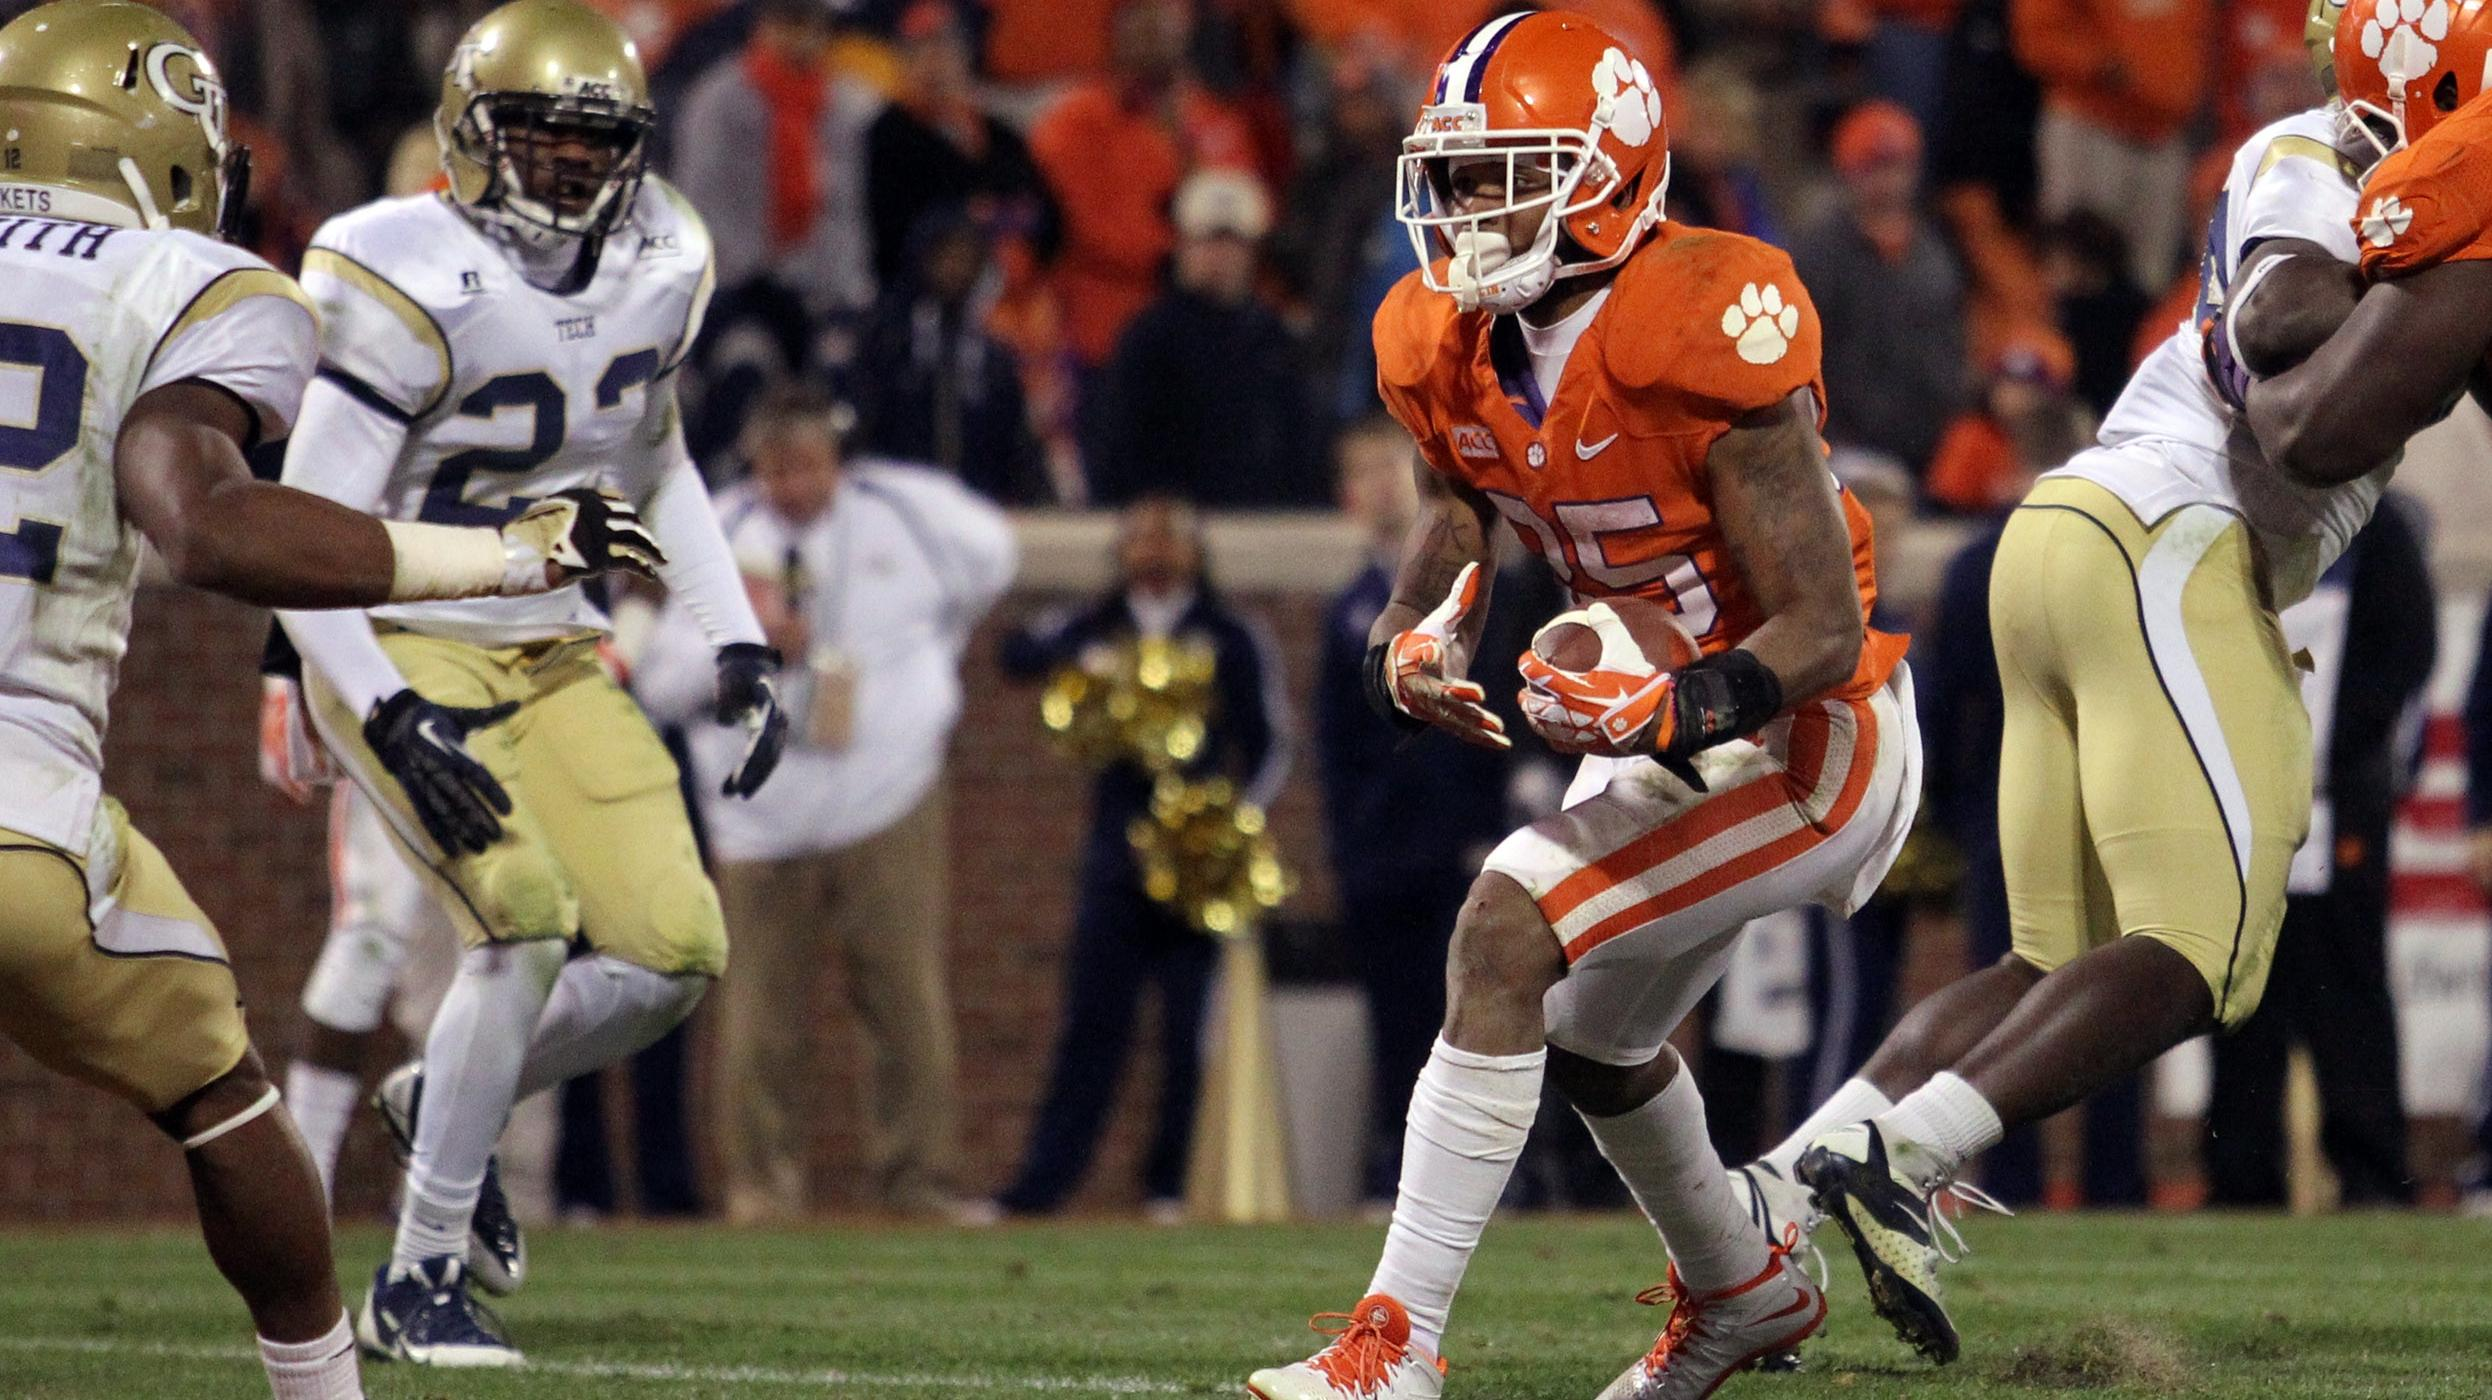 Clemson at South Carolina Football Game to Kick Off at 7 PM on Nov. 30